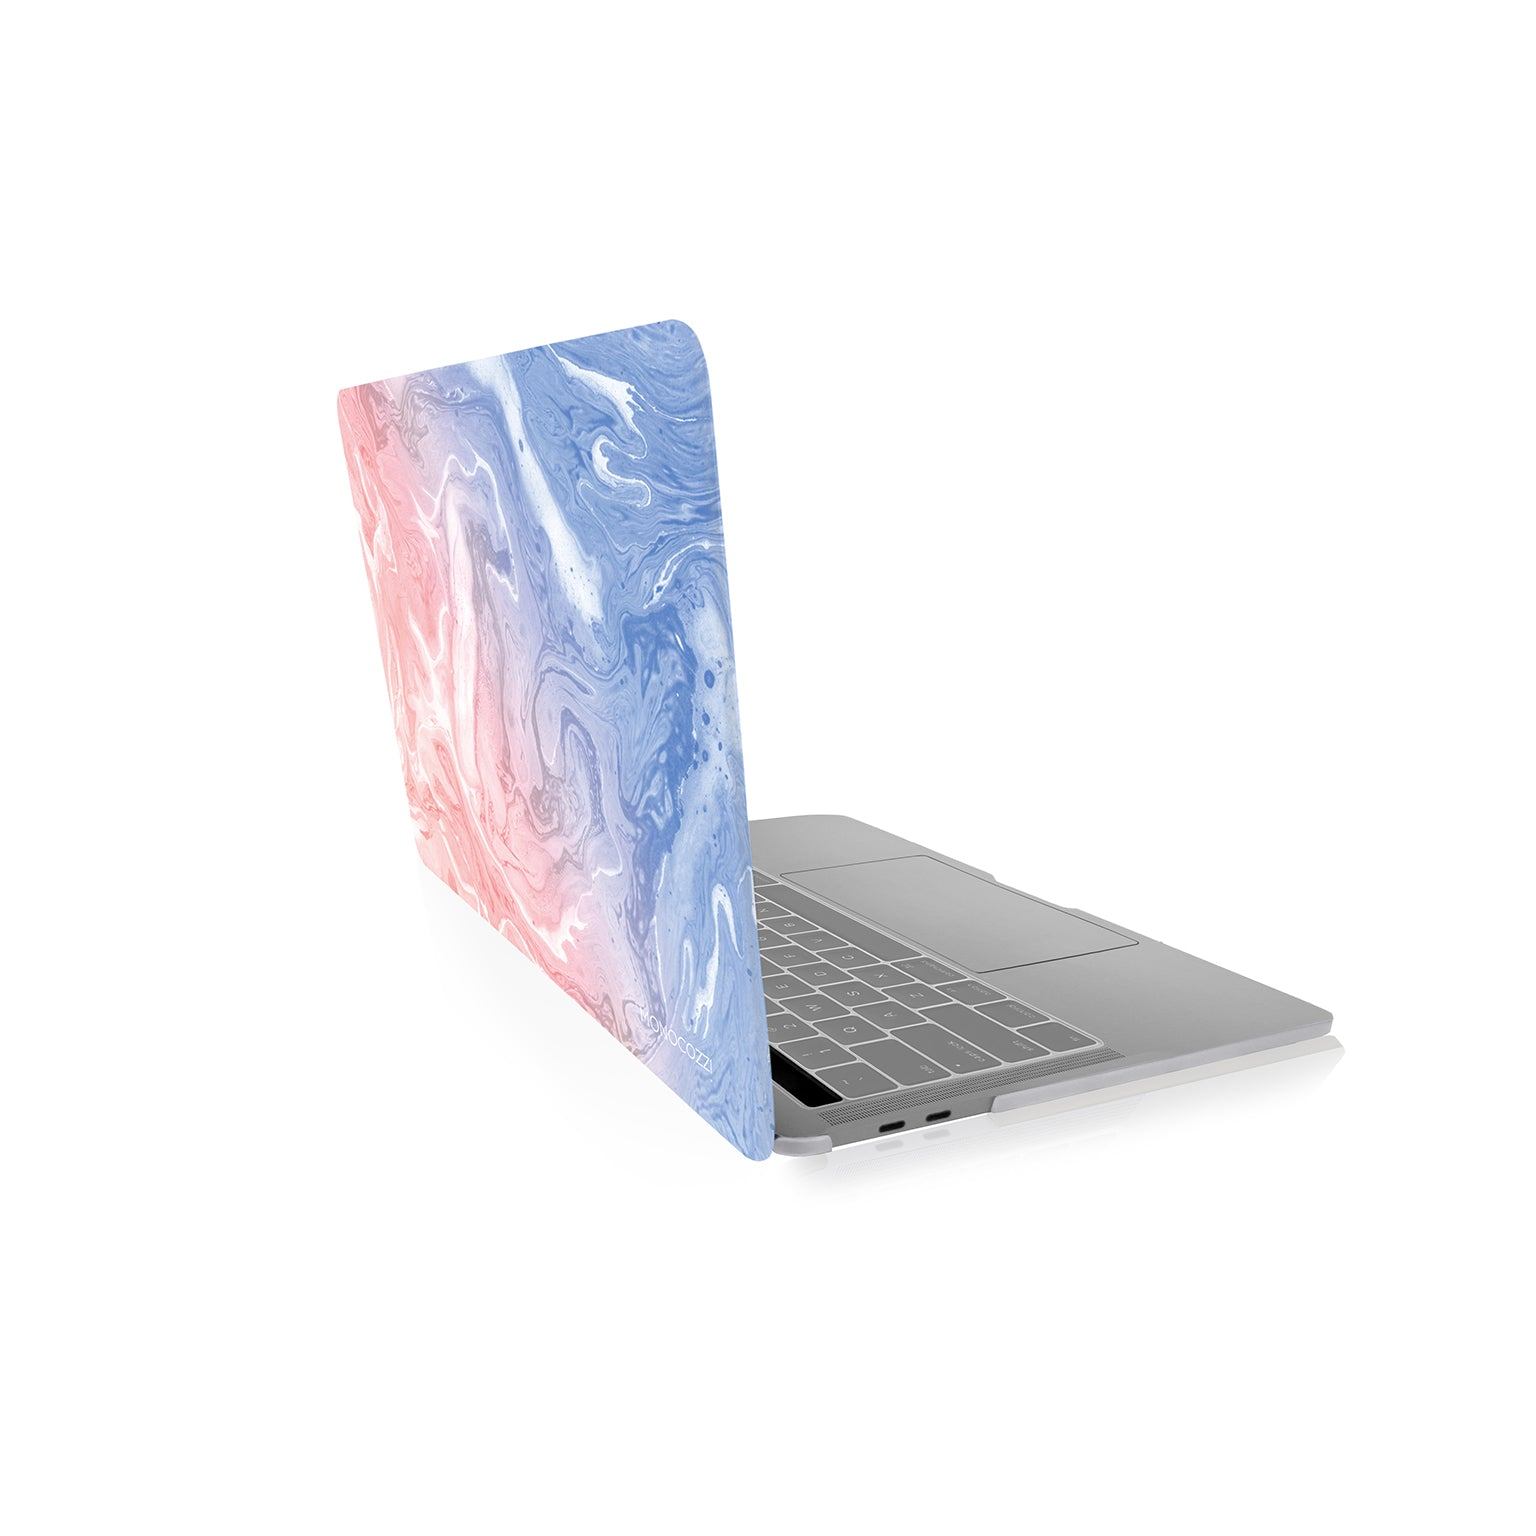 "Pattern Lab | Hard Case for Macbook Pro 13"" w/ USB-C - Watercolor (Original)"